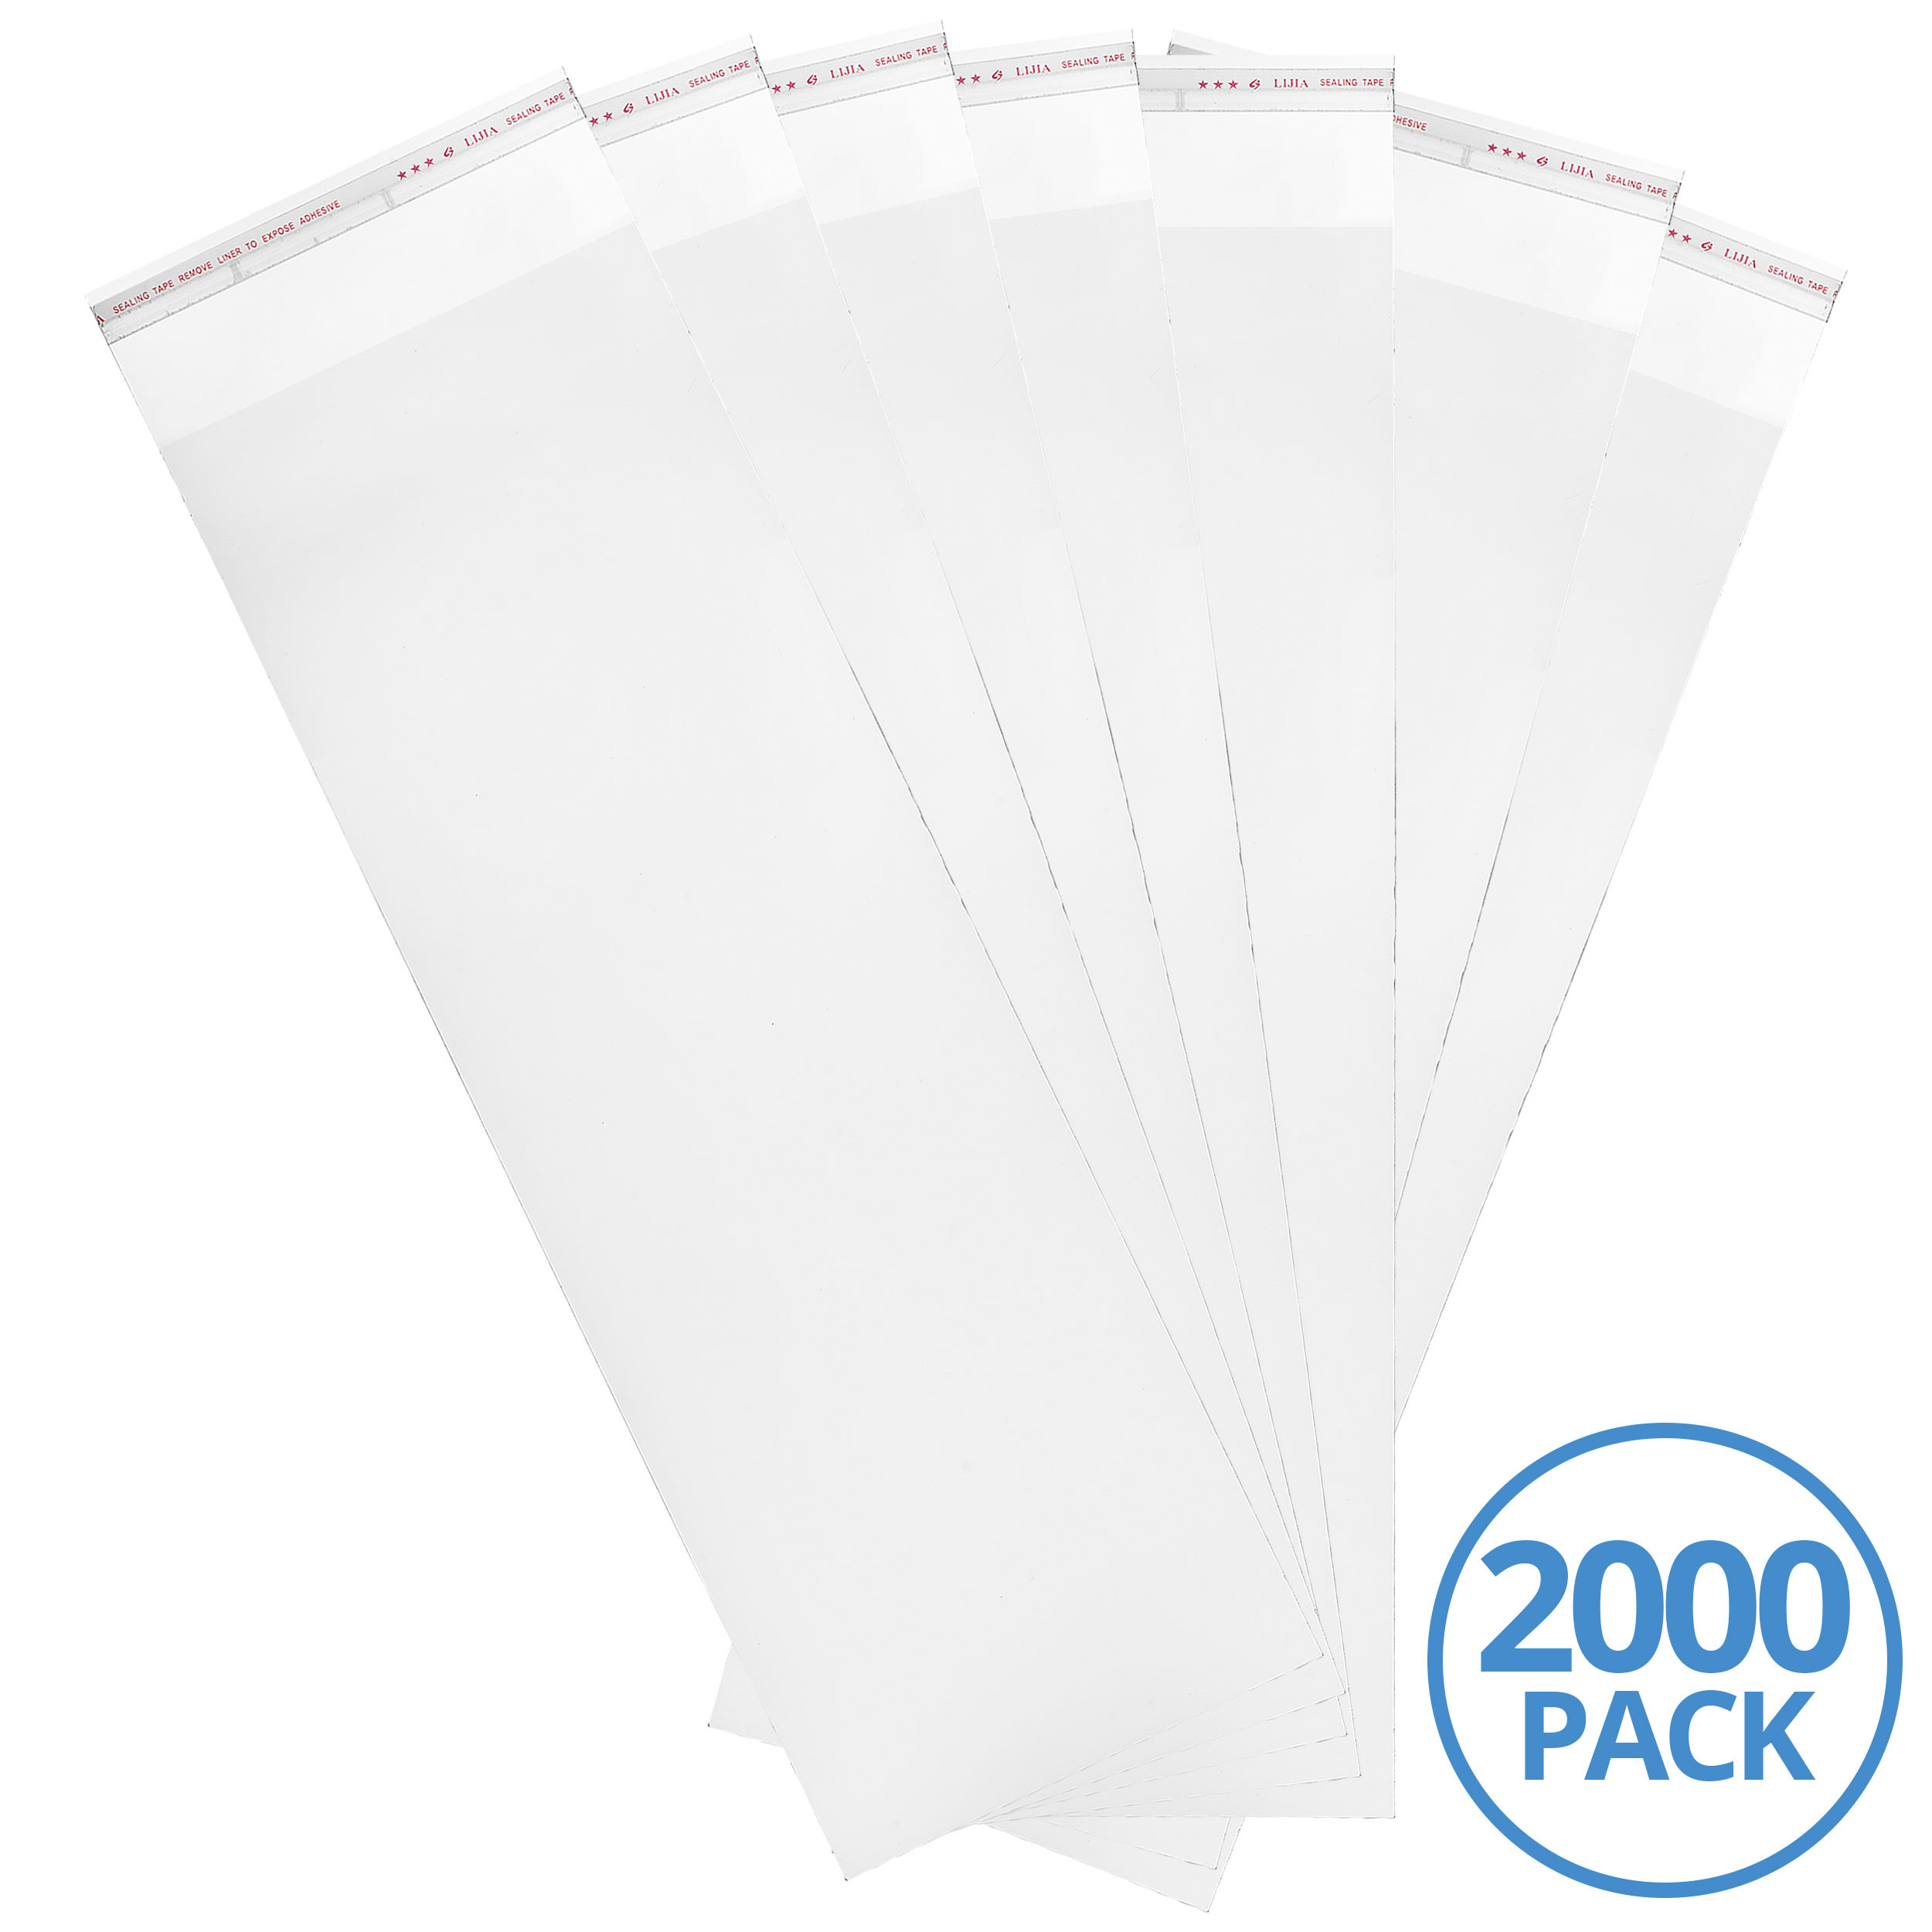 "6x18"" 3MIL Adhesive Top Clear Nylon Bag, 2000 Pack"